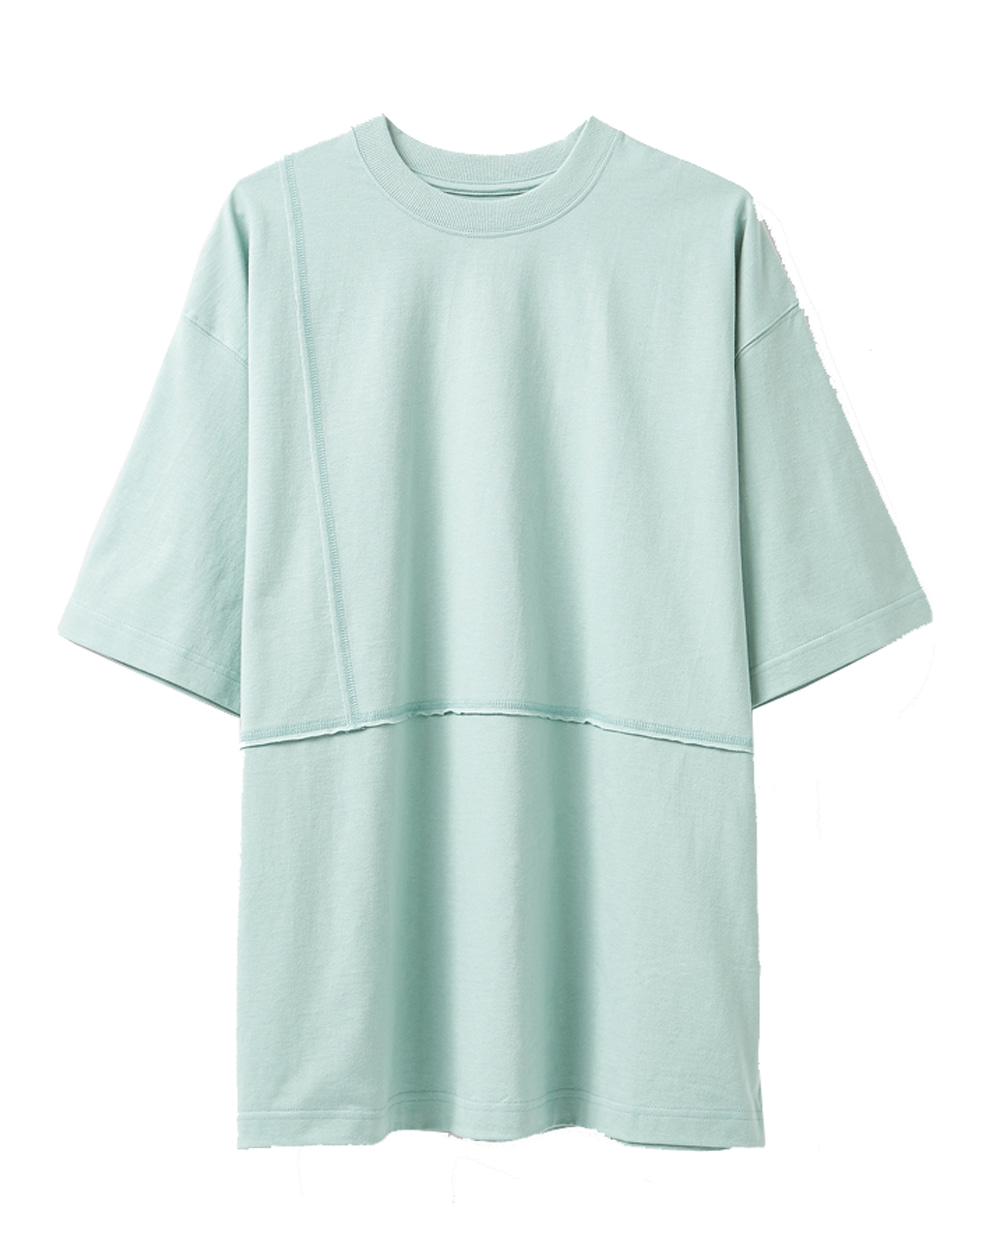 유스 Cut-off T-shirt (Mint)